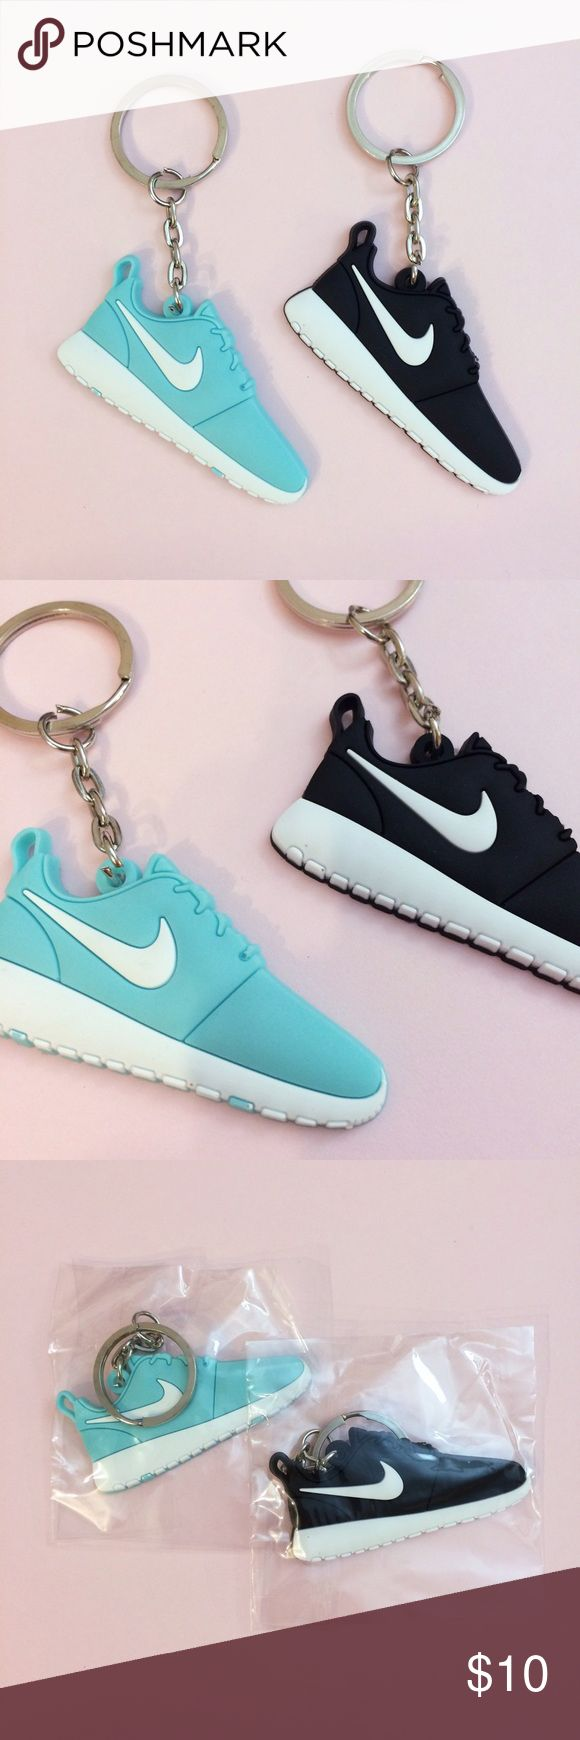 2775b0fc893c3 ... nike roshe keychain Steph Curry x Under Armour Sneaker Keychain Newest sneaker  keychains out!